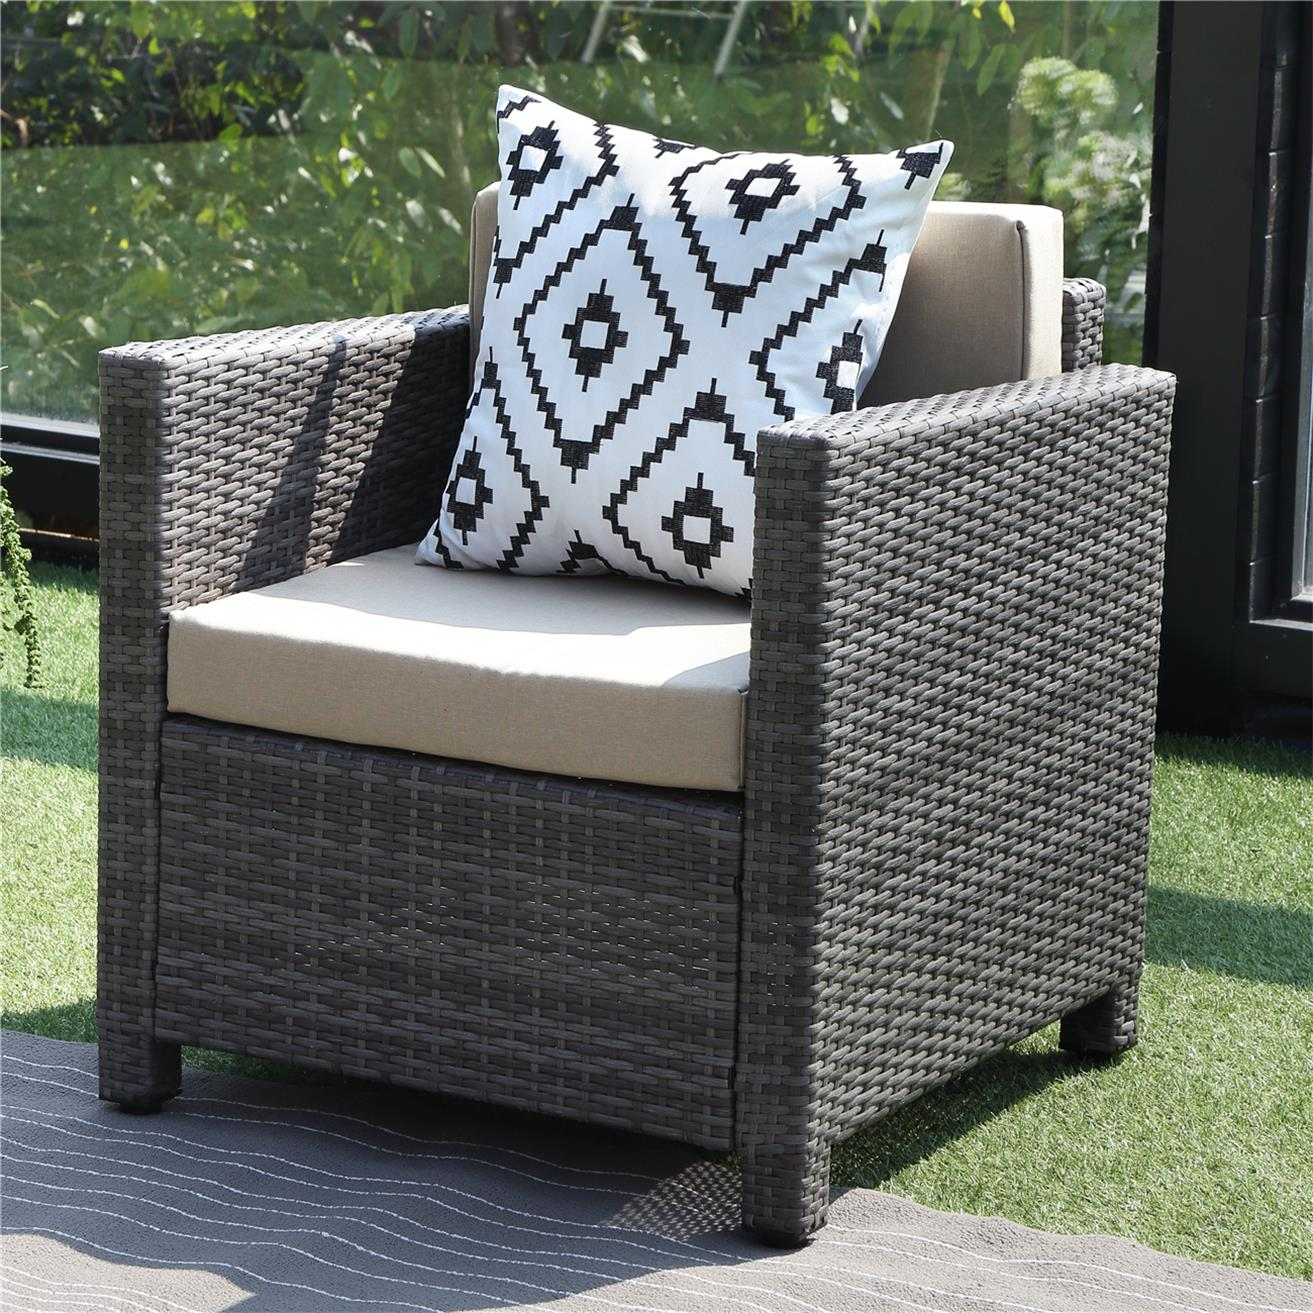 outdoor patio furniture set wisteria lane 4 piece rattan wicker sofa cushioned with coffee table grey